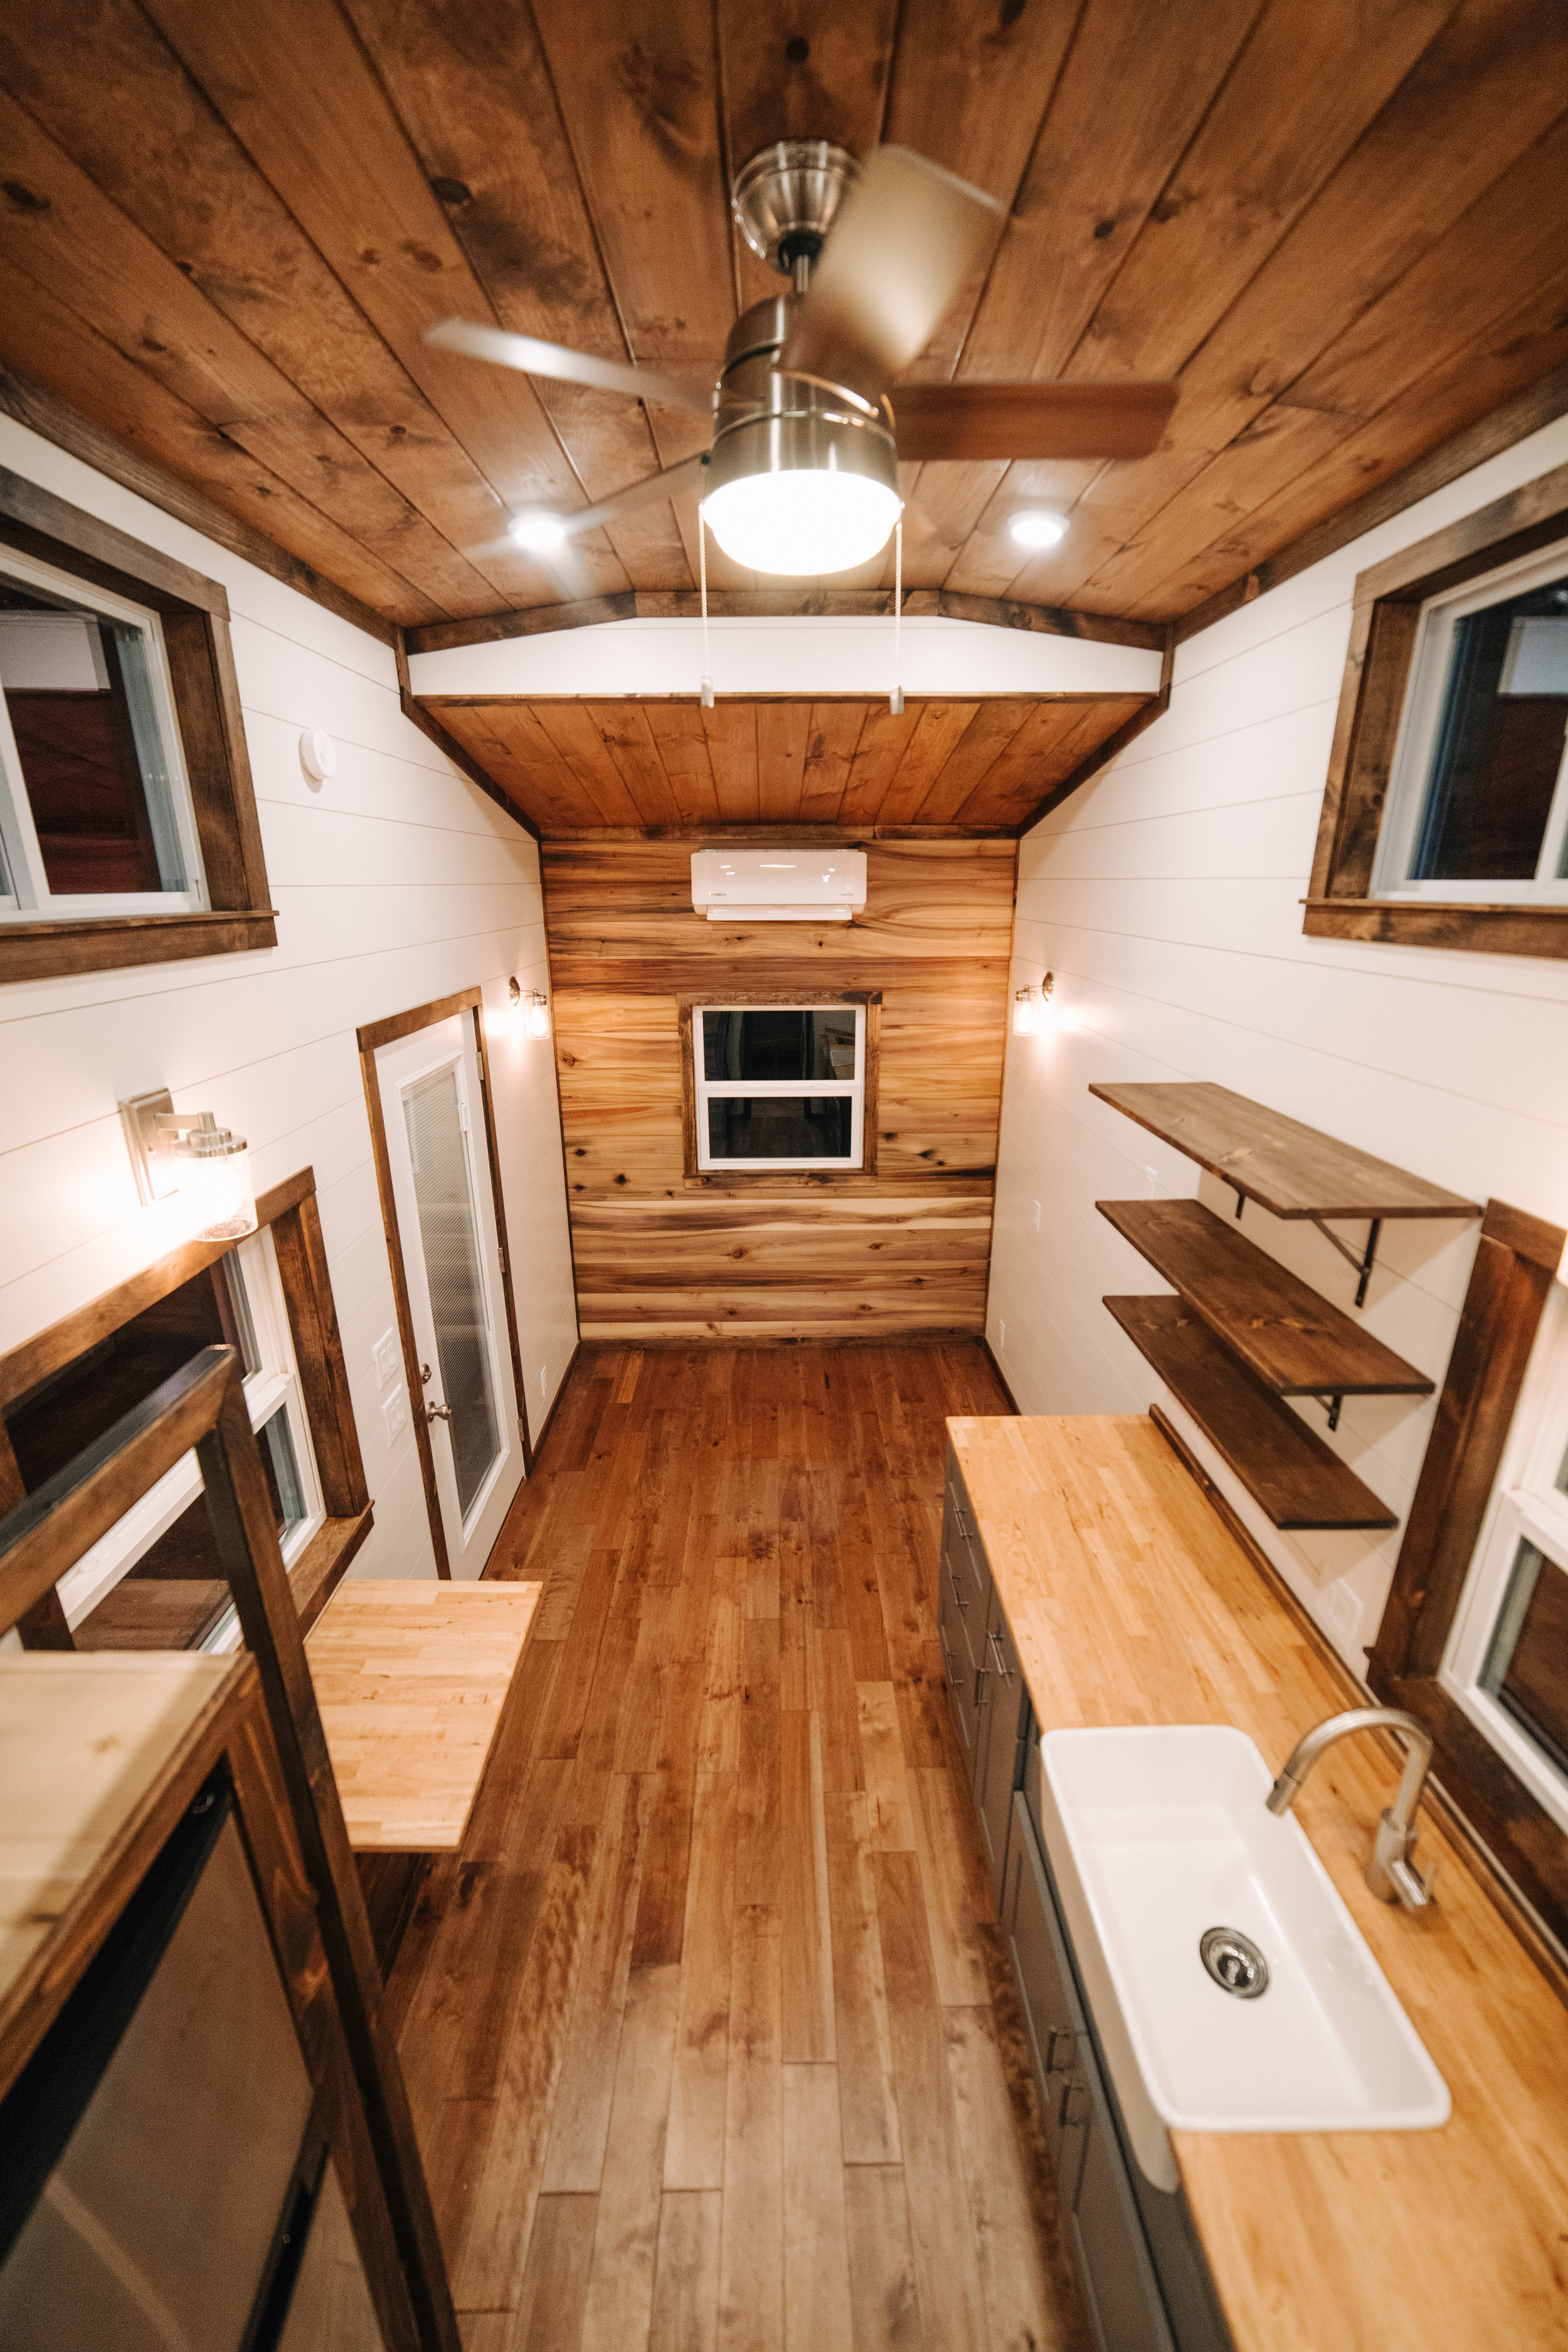 The Noah by Wind River Tiny Homes - farmhouse sink, butcher block counter, birch hardwood flooring, natural poplar accent wall, shiplap